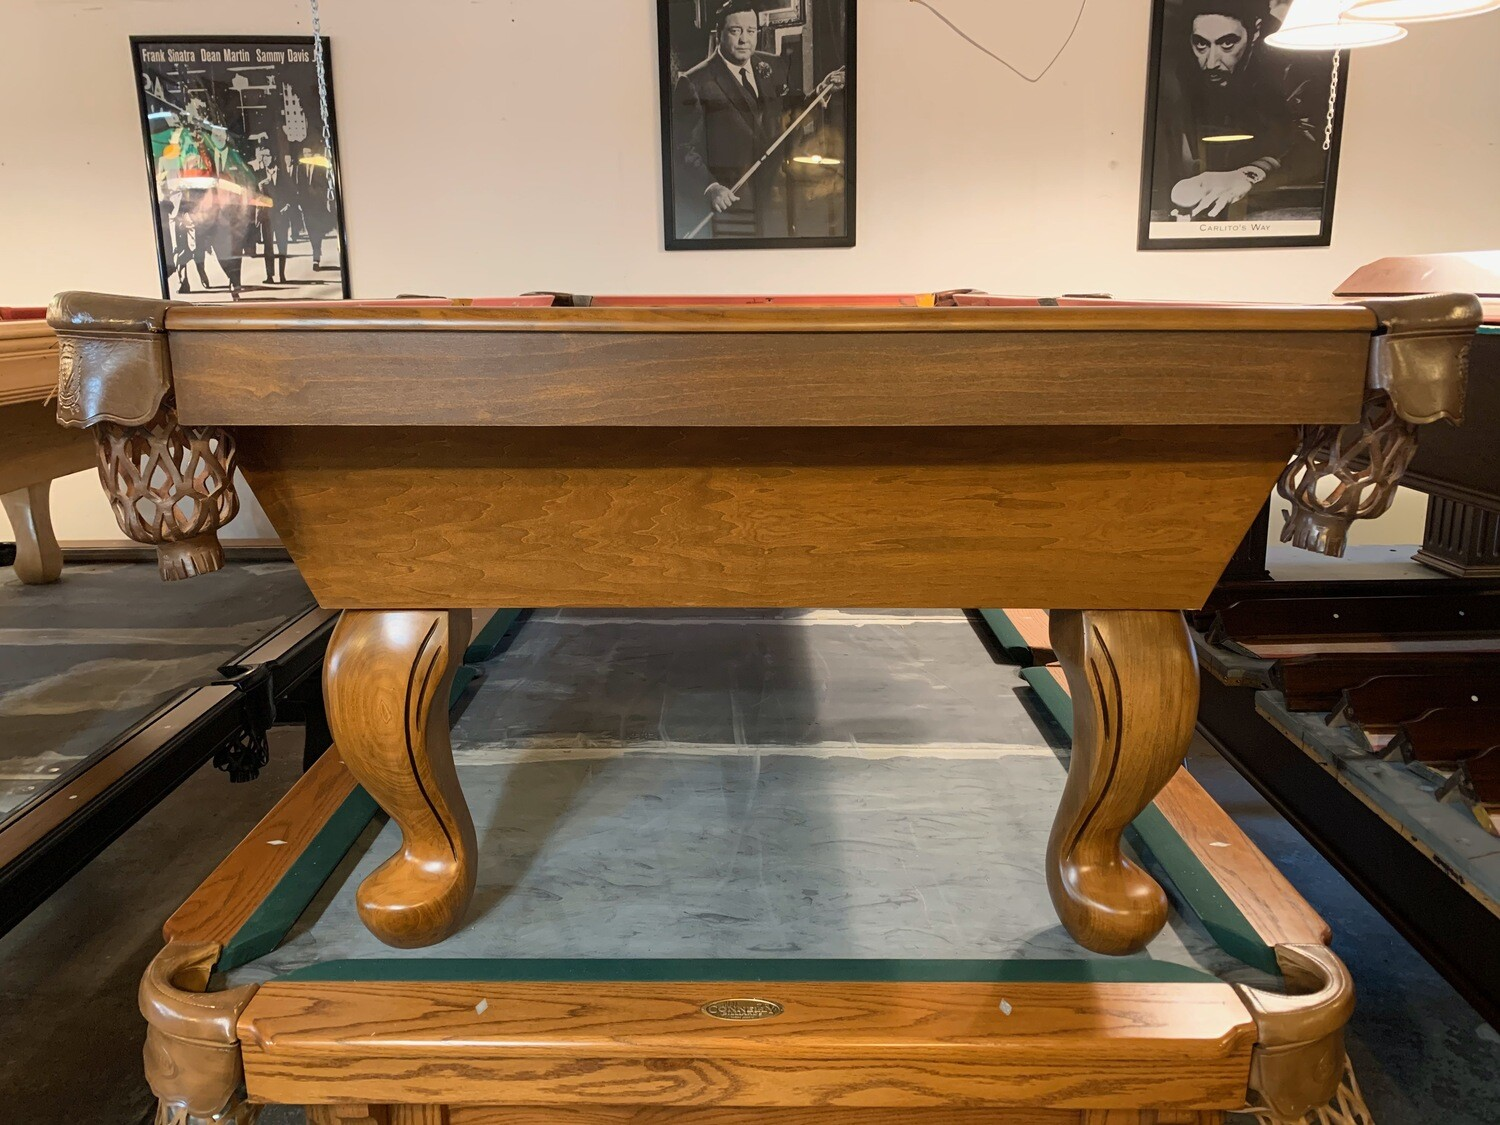 8' Connelly Pool Table